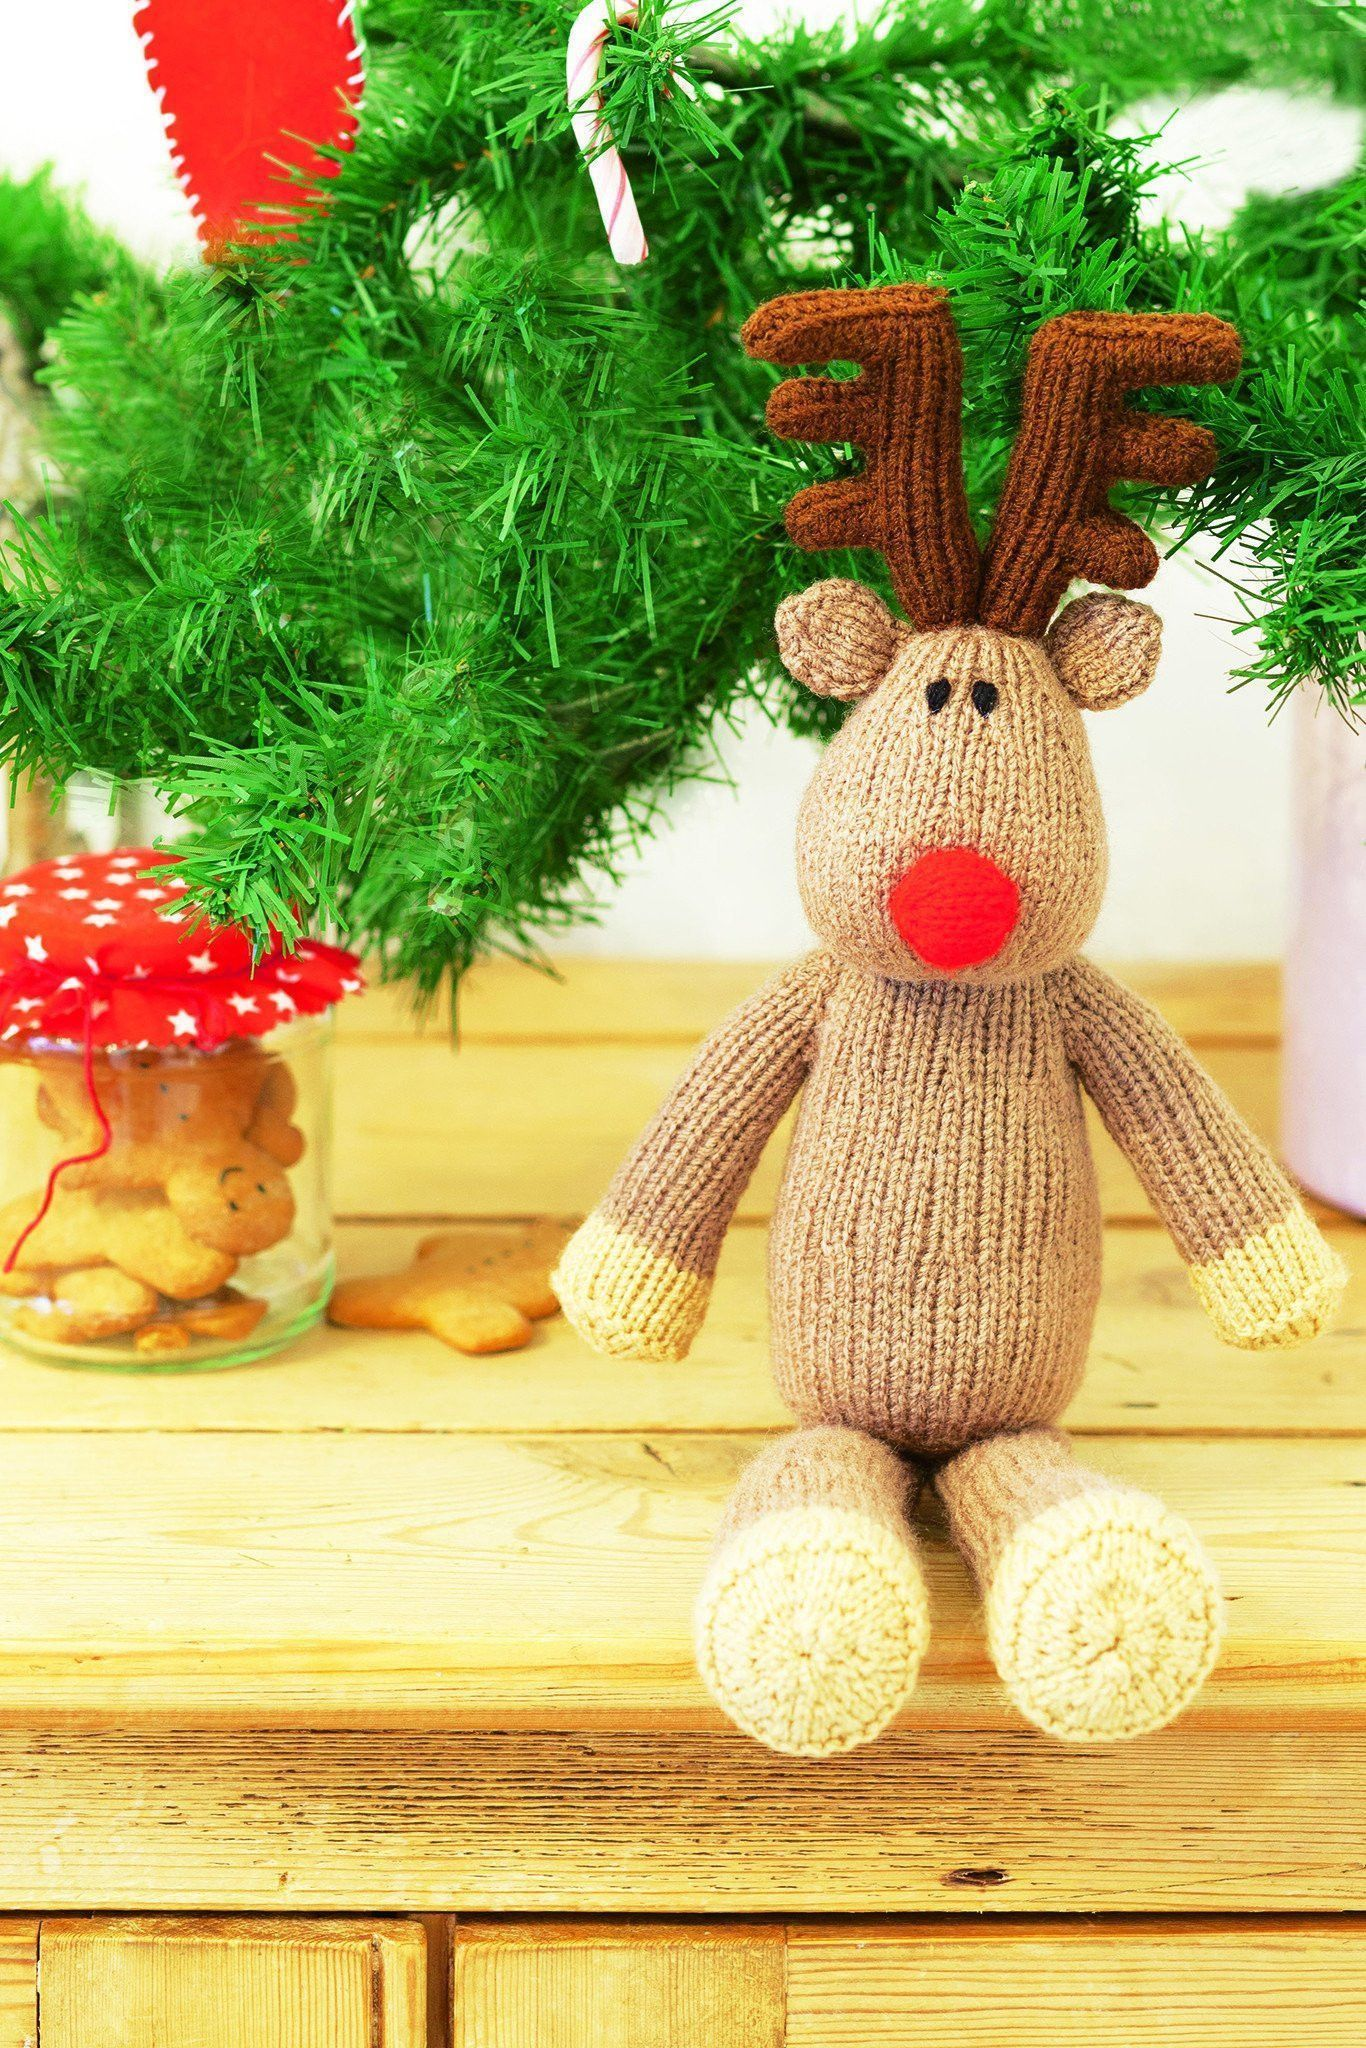 Christmas Reindeer Toy Knitting Pattern | The Knitting Network